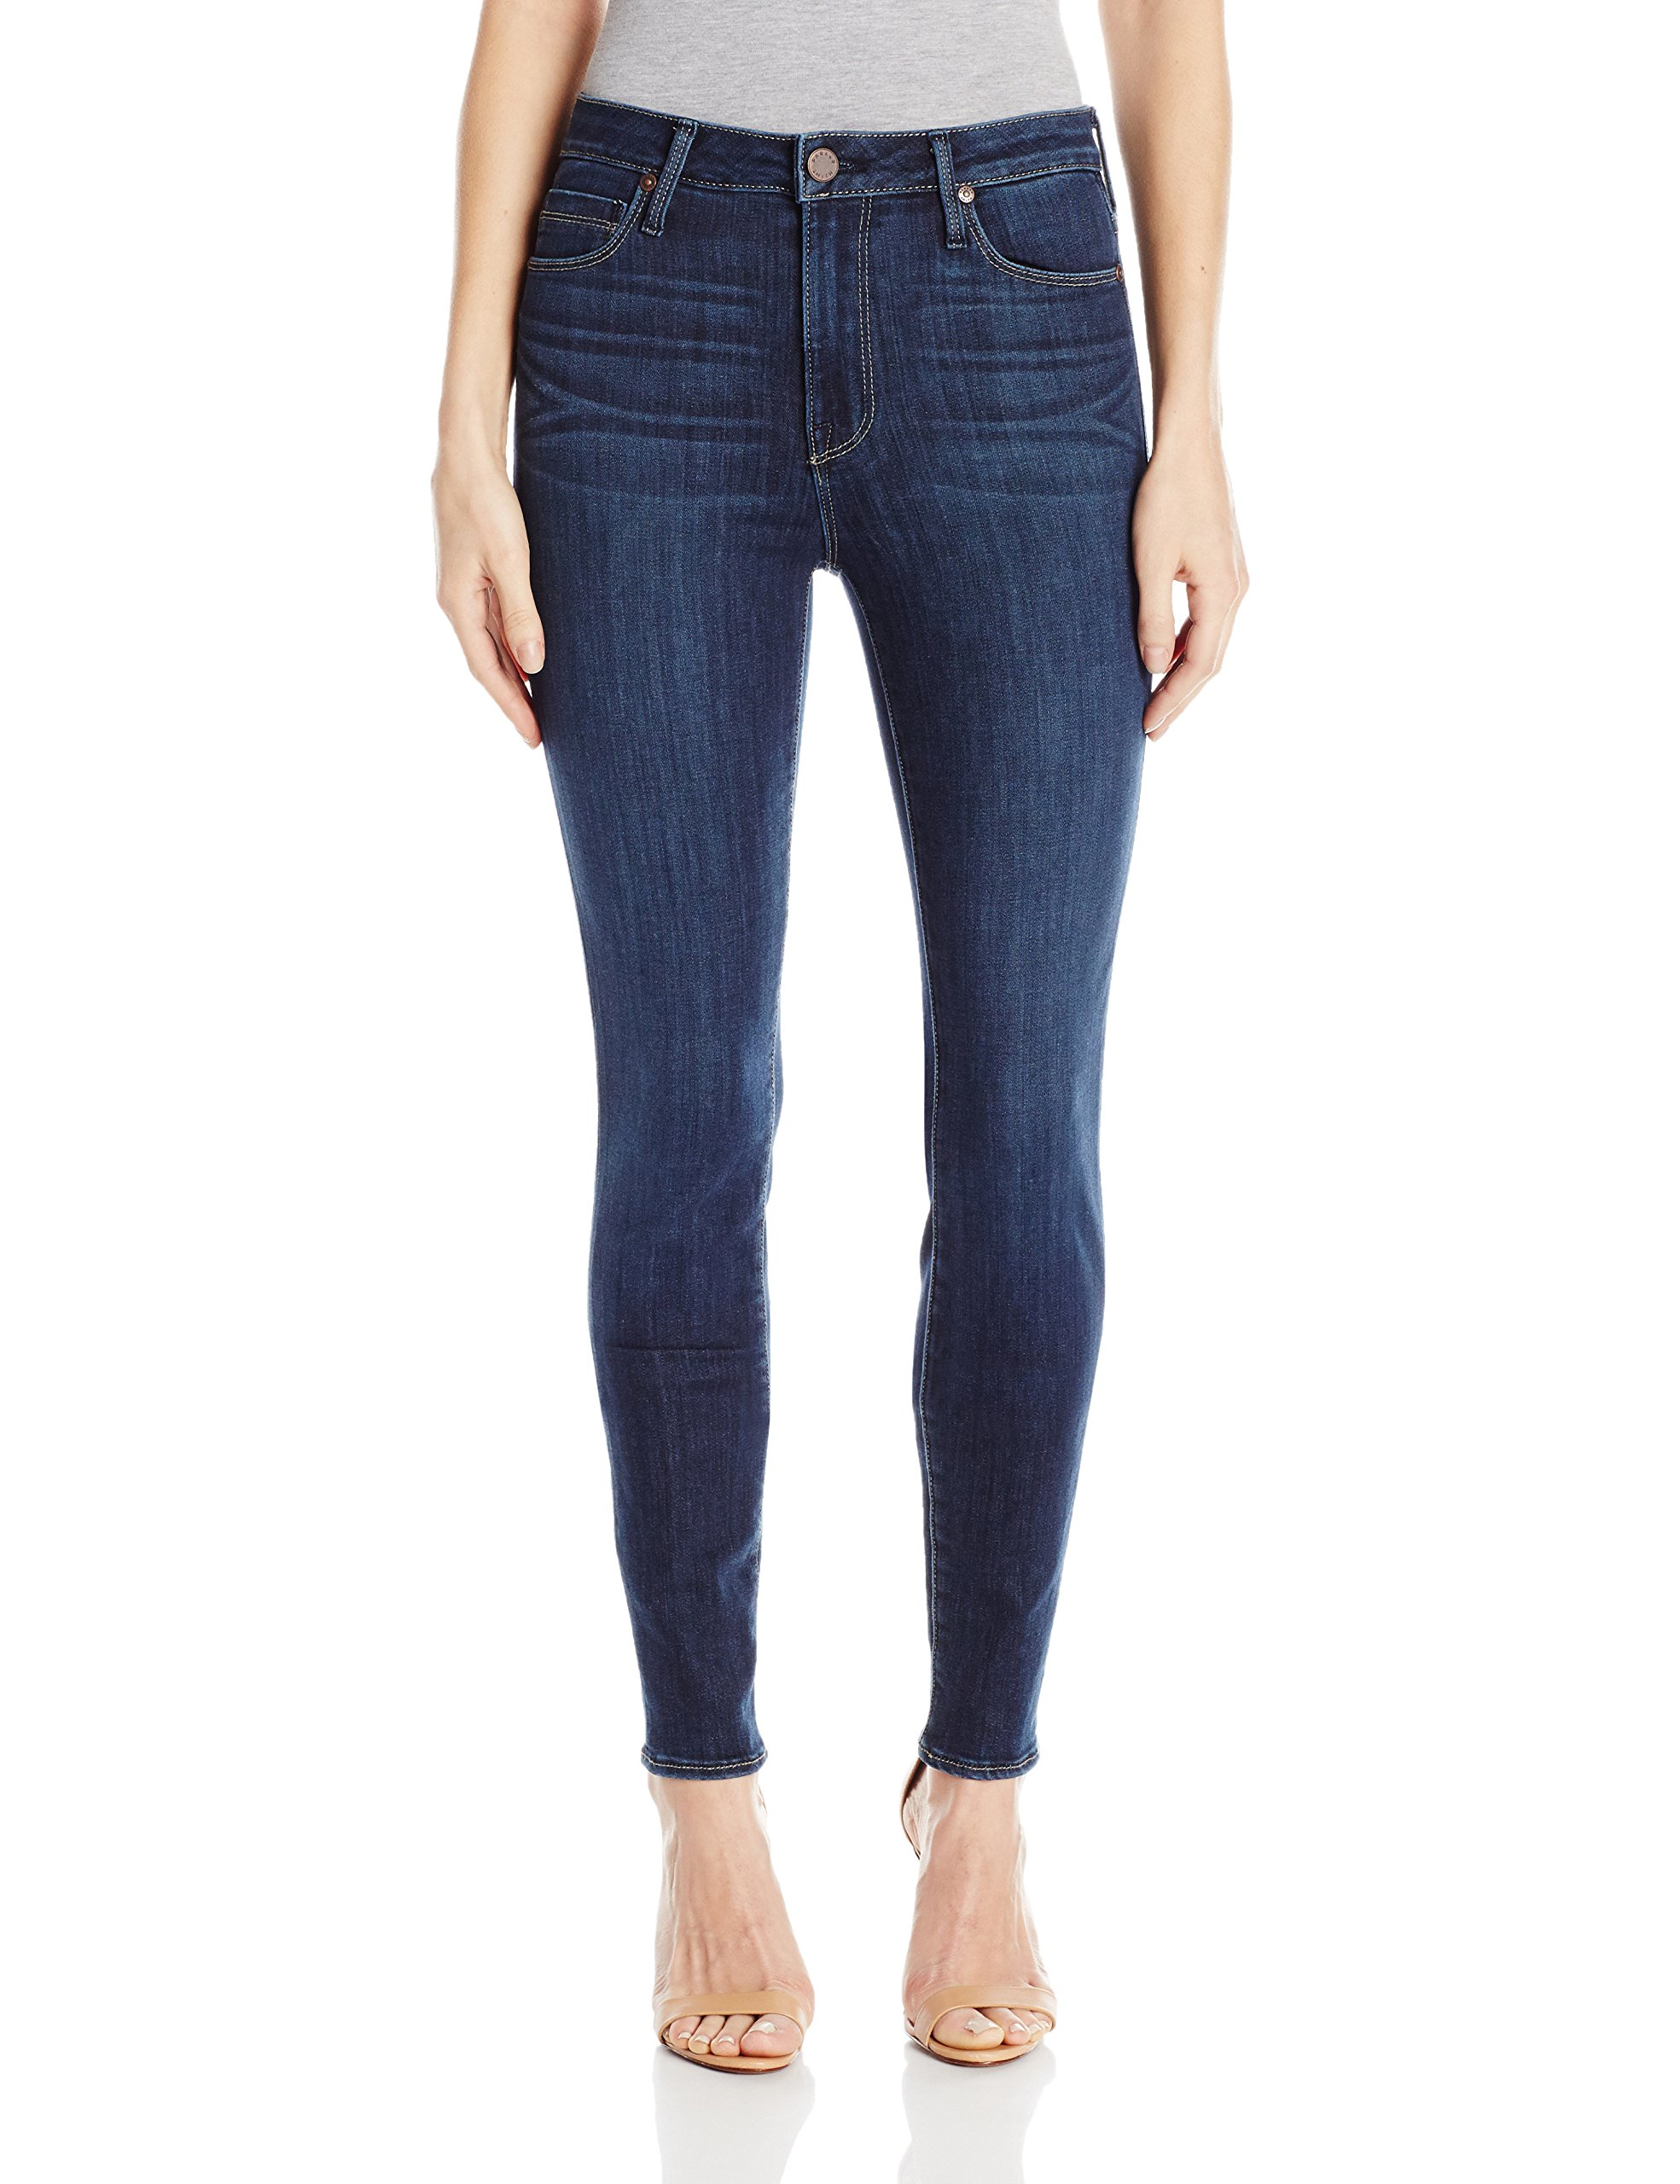 Parker Smith Women's Bombshell High Rise Skinny Jeans, Empire, 32 by Parker Smith